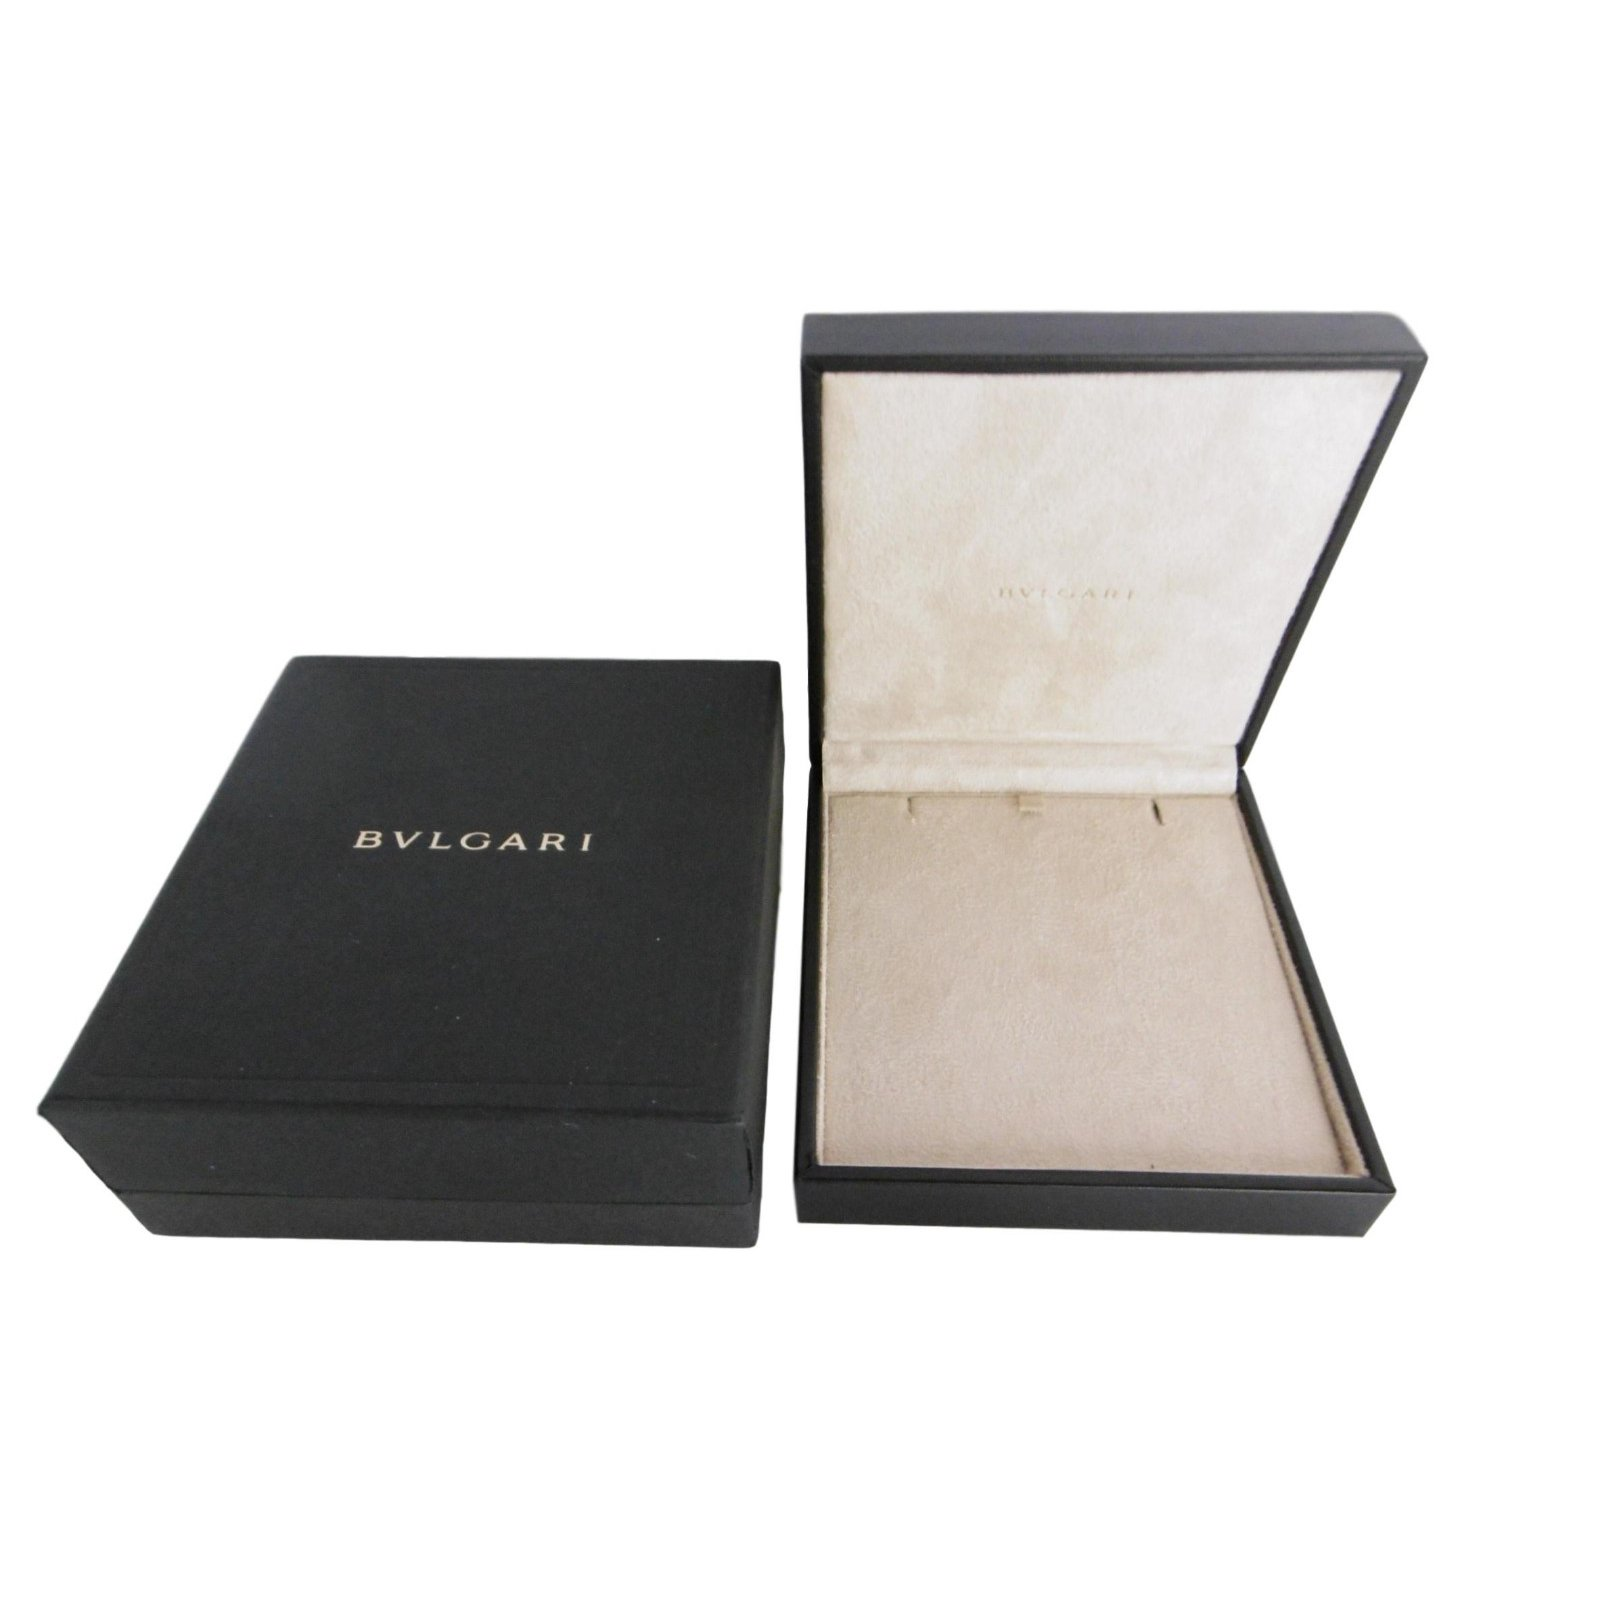 Bulgari Bulgari Necklace Jewelry Box Inner Box and Outer Box Misc